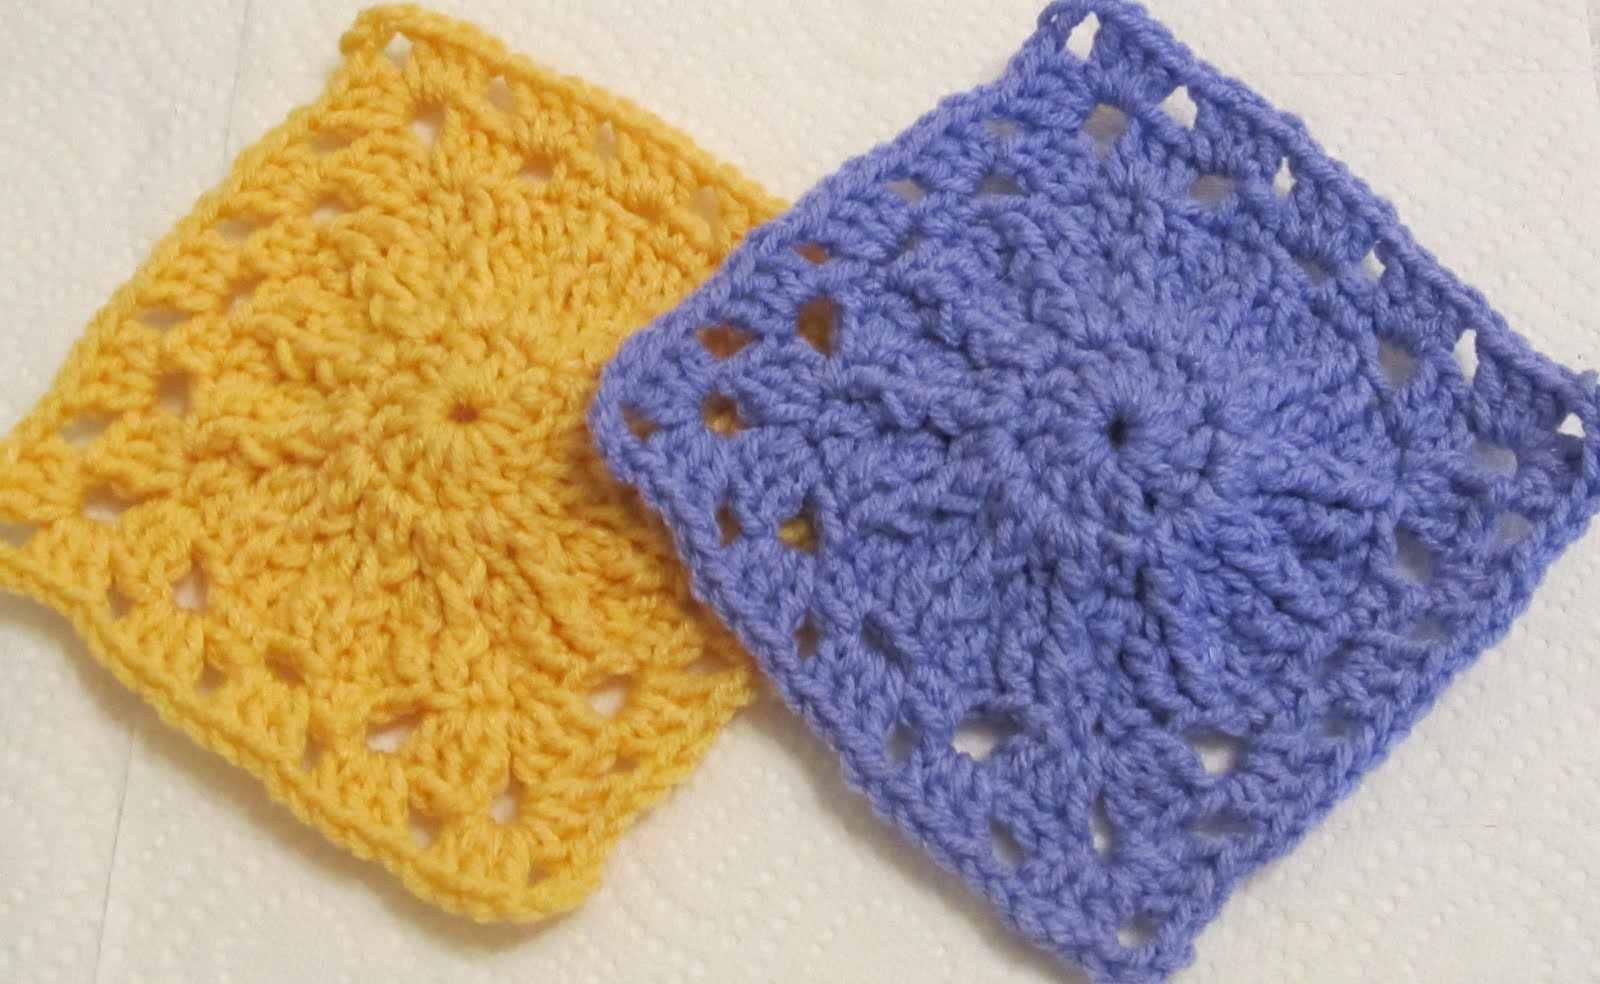 Crocheting Squares : SmoothFox Crochet and Knit: SmoothFox Charity Square Nbr 1 thru 4 ...